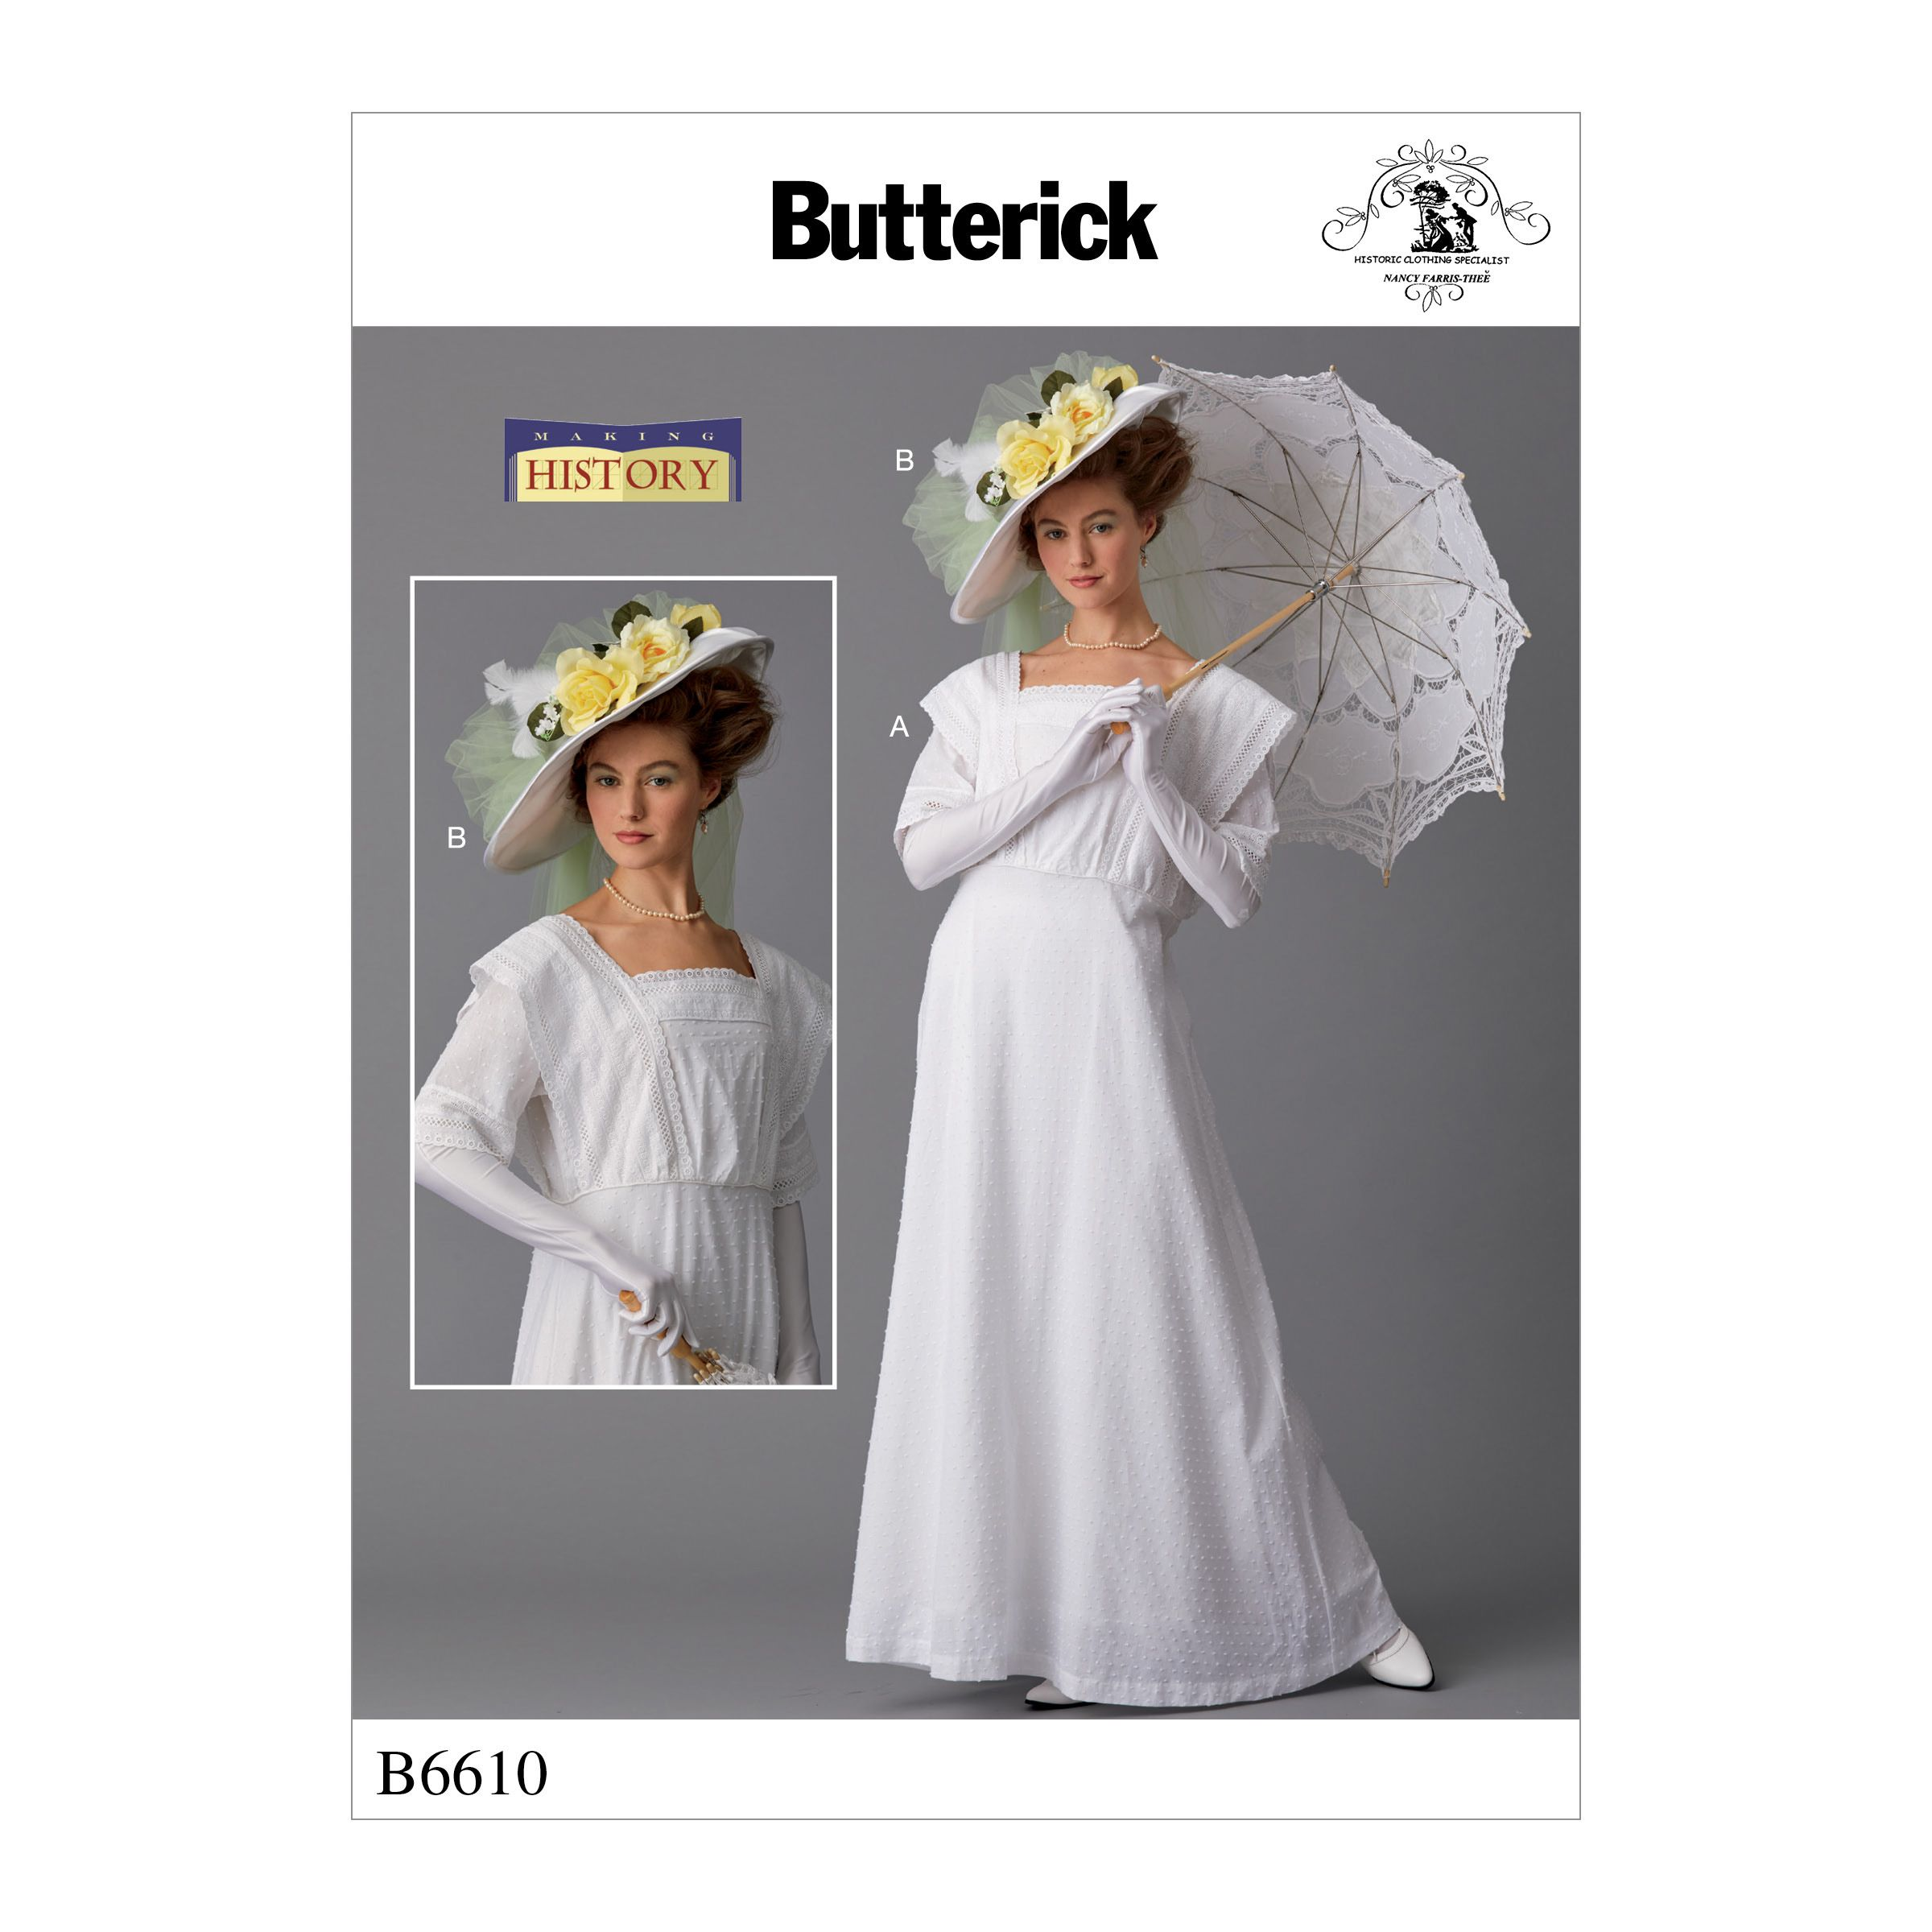 Butterick 6610 Misses Costume And Hat Butterick Sewing Pattern Loose Fitting Dresses Costume Patterns [ 2400 x 2400 Pixel ]